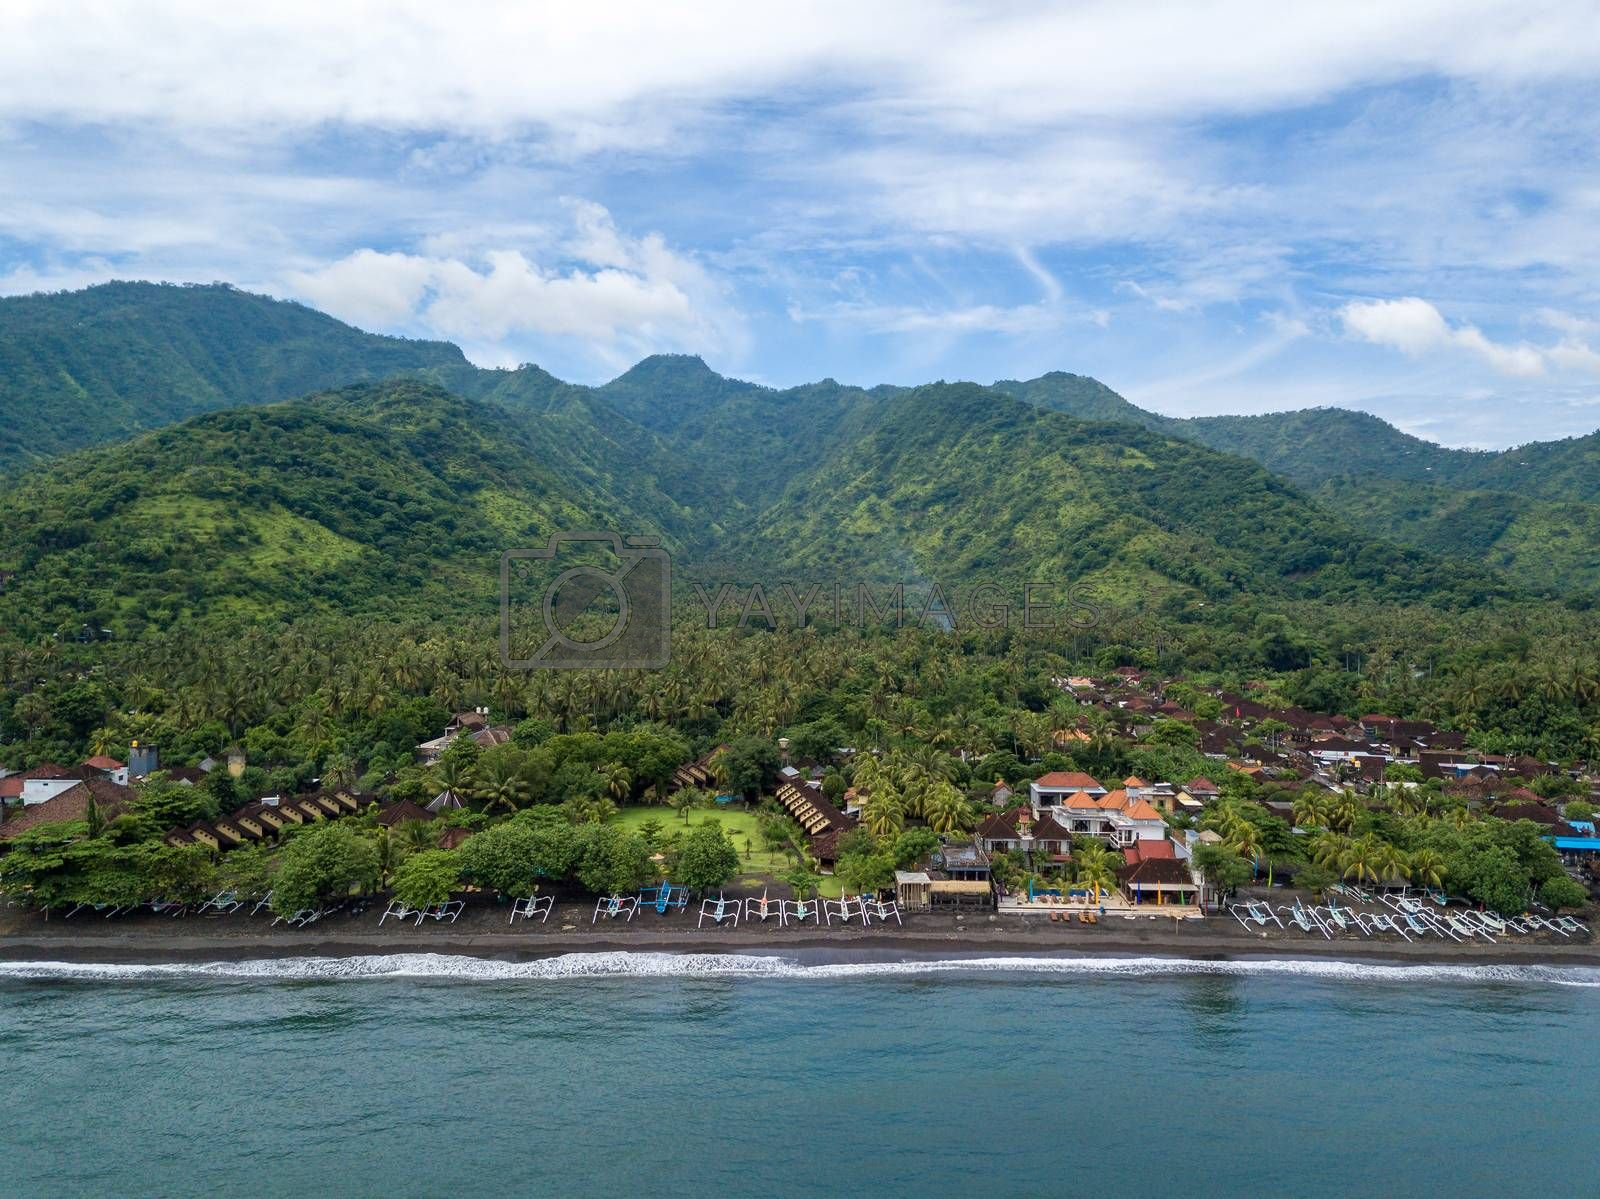 Aerial view of Amed beach in Bali, Indonesia. Traditional fishing boats called jukung on the black sand beach.